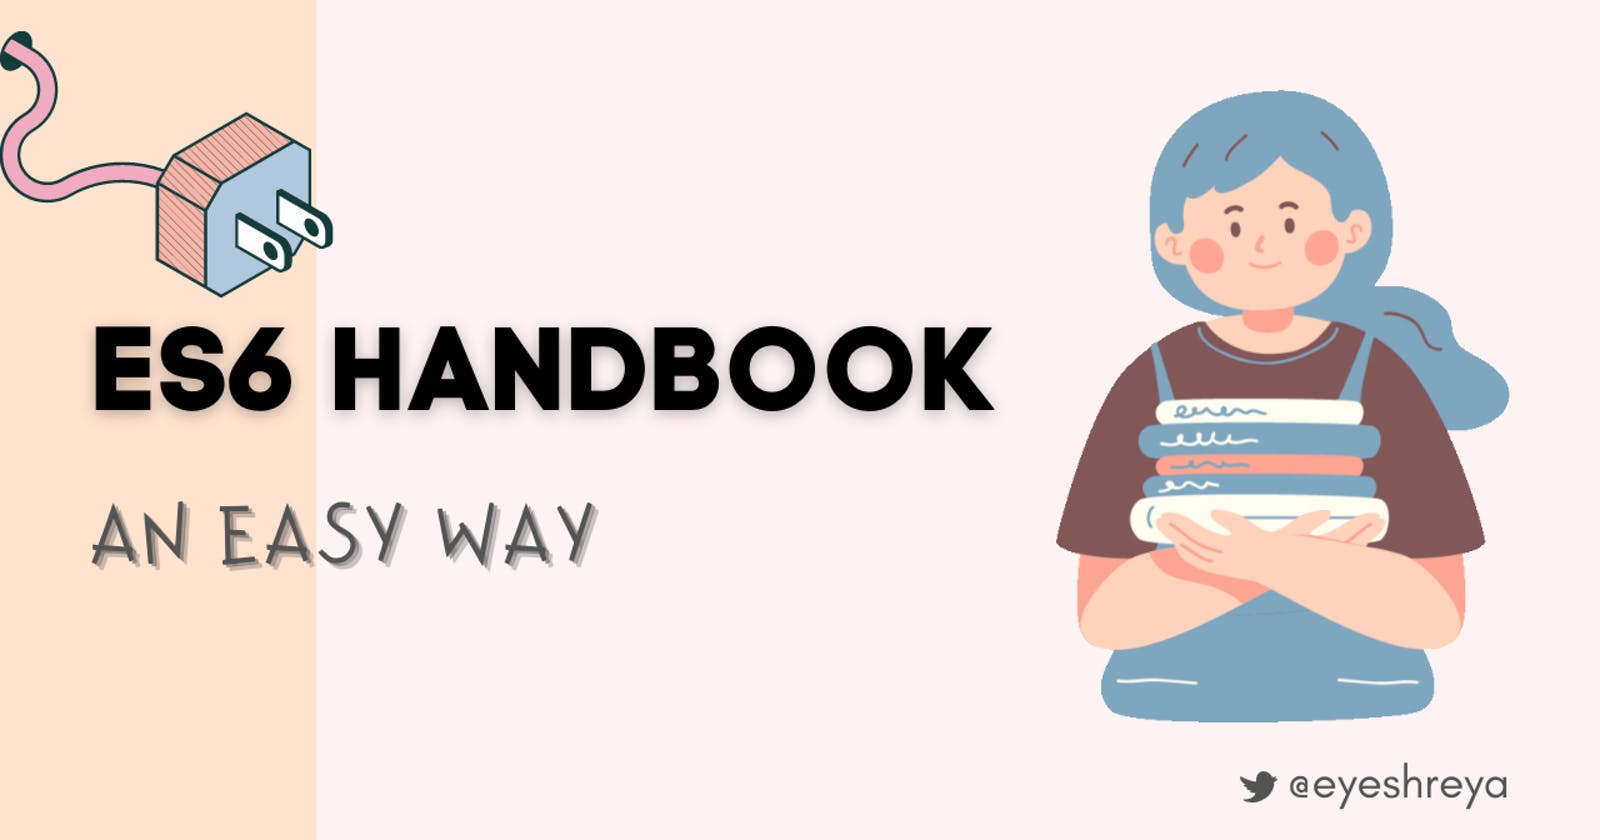 ES6 Handbook: Everything You Need to Know